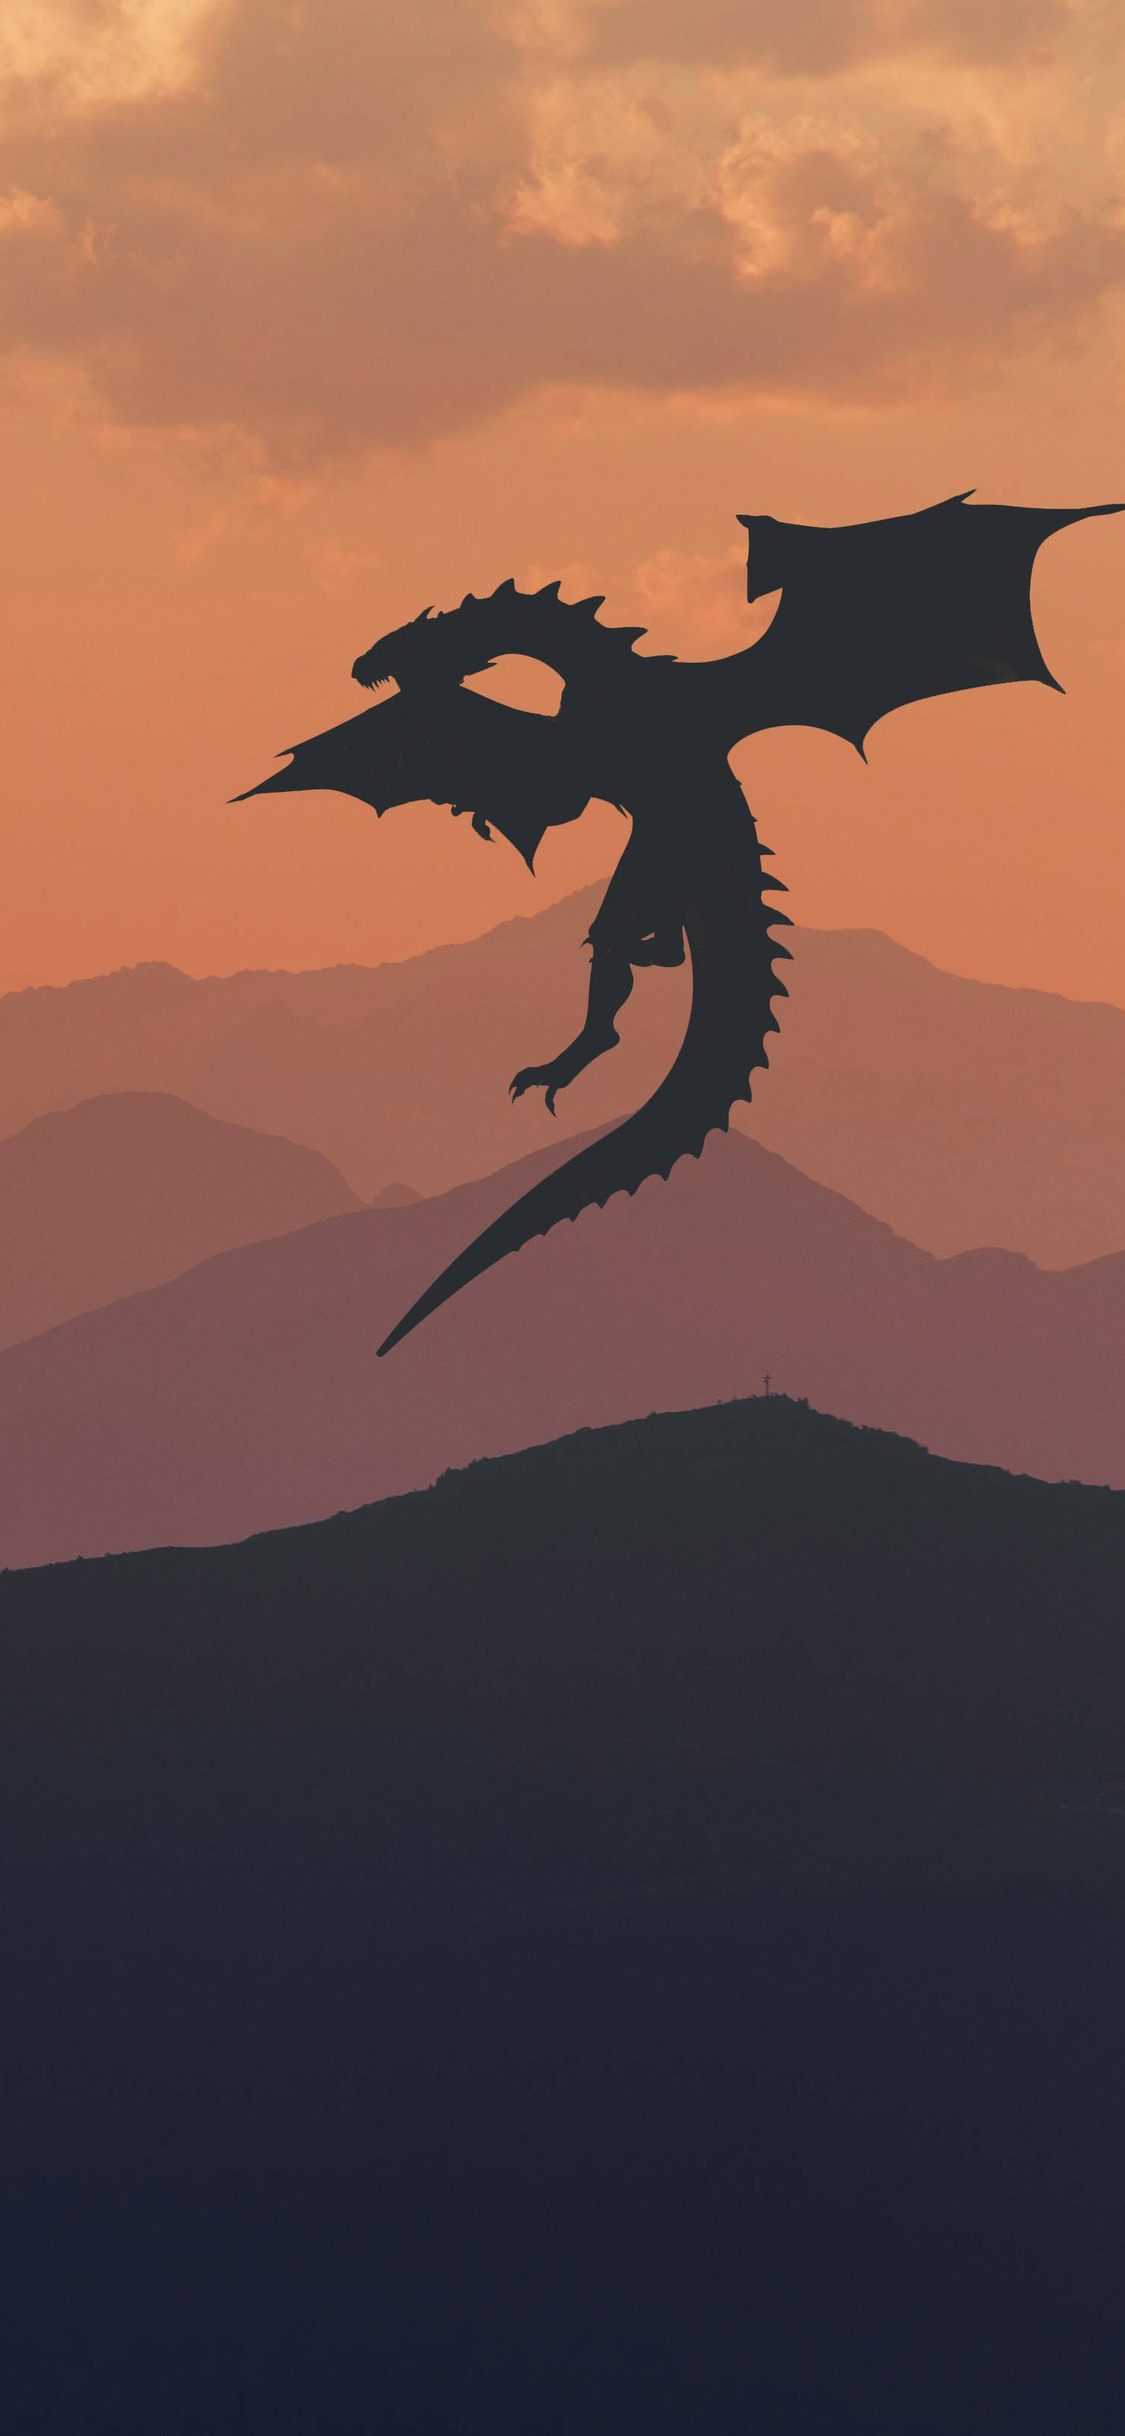 game-of-thrones-dragon iPhone game of thrones wallpaper